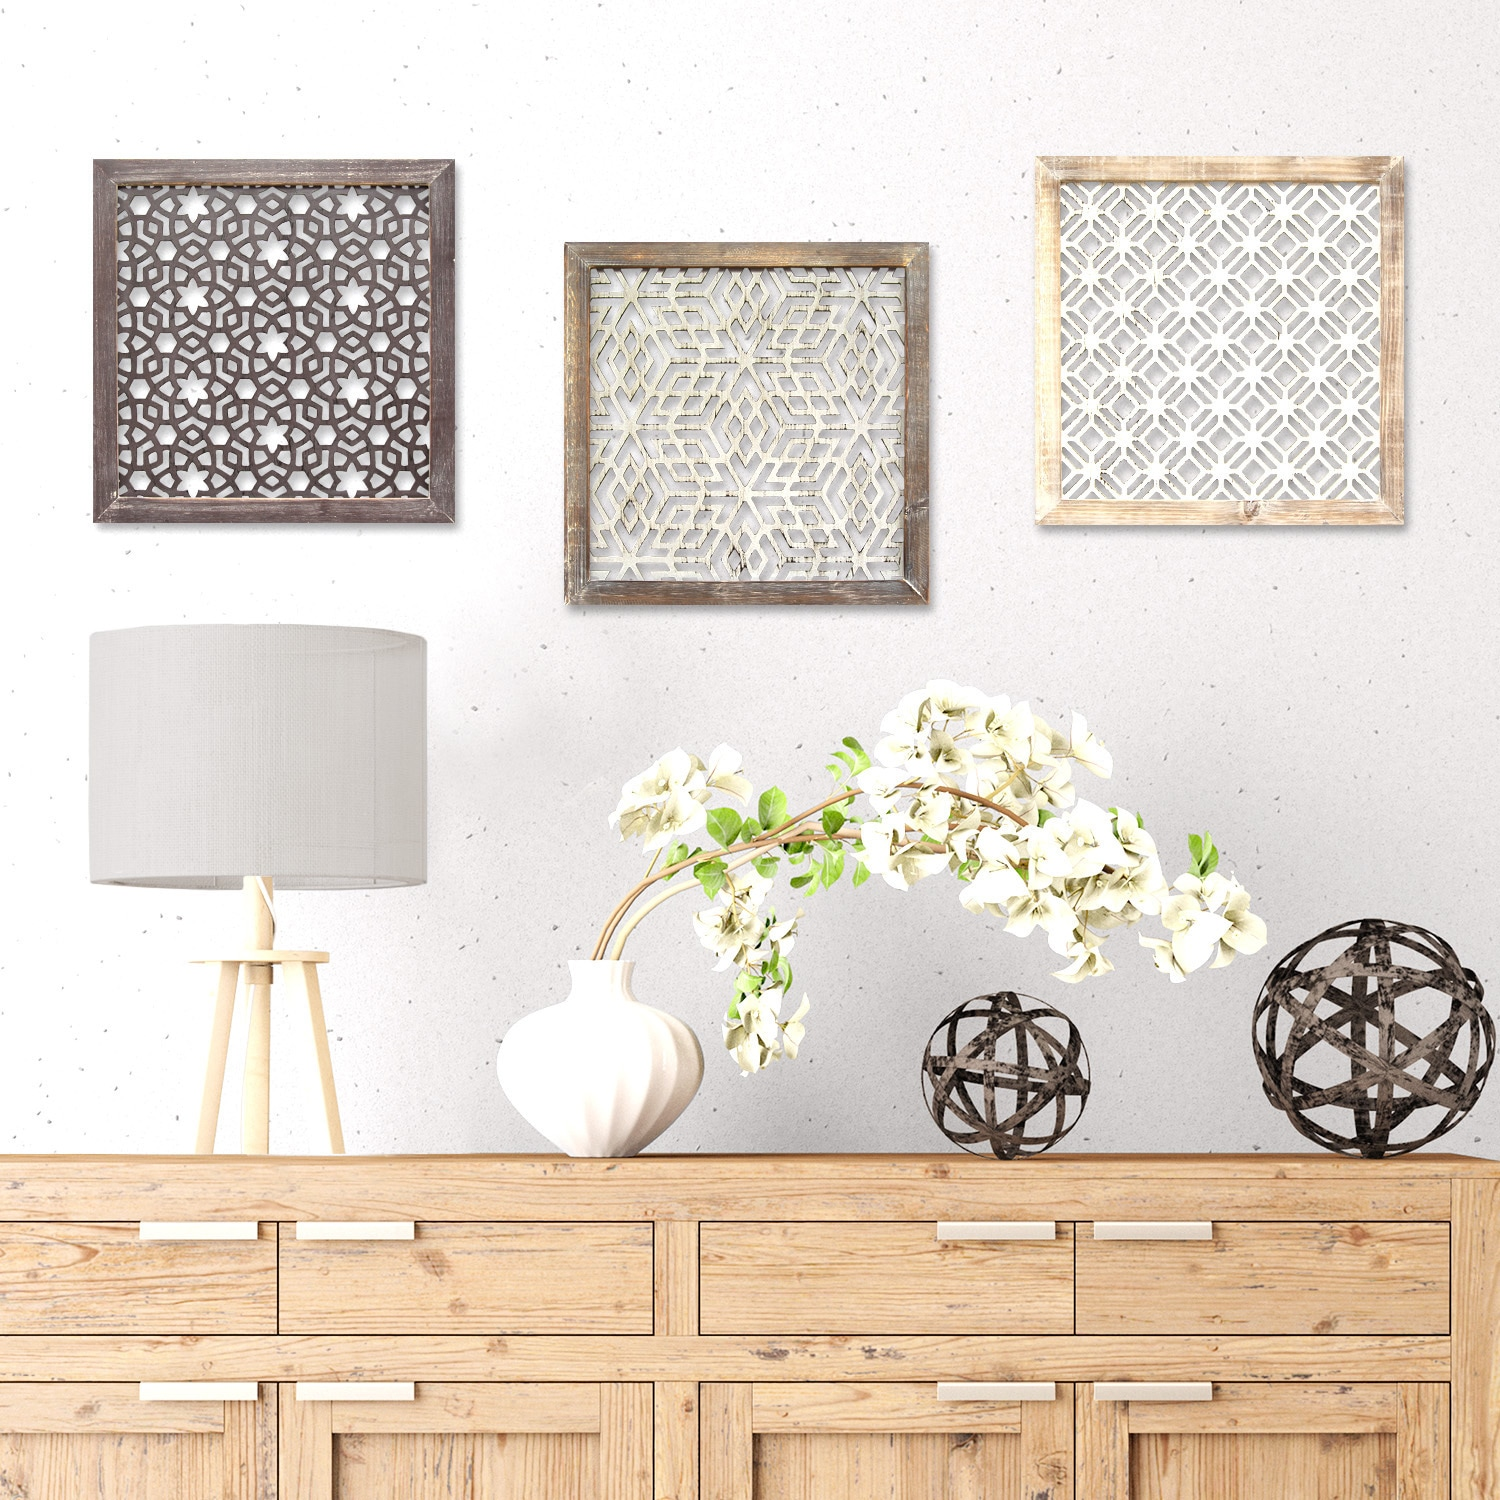 Shop stratton home decor hand crafted framed laser cut wall decor 1 piece free shipping on orders over 45 overstock 12861548